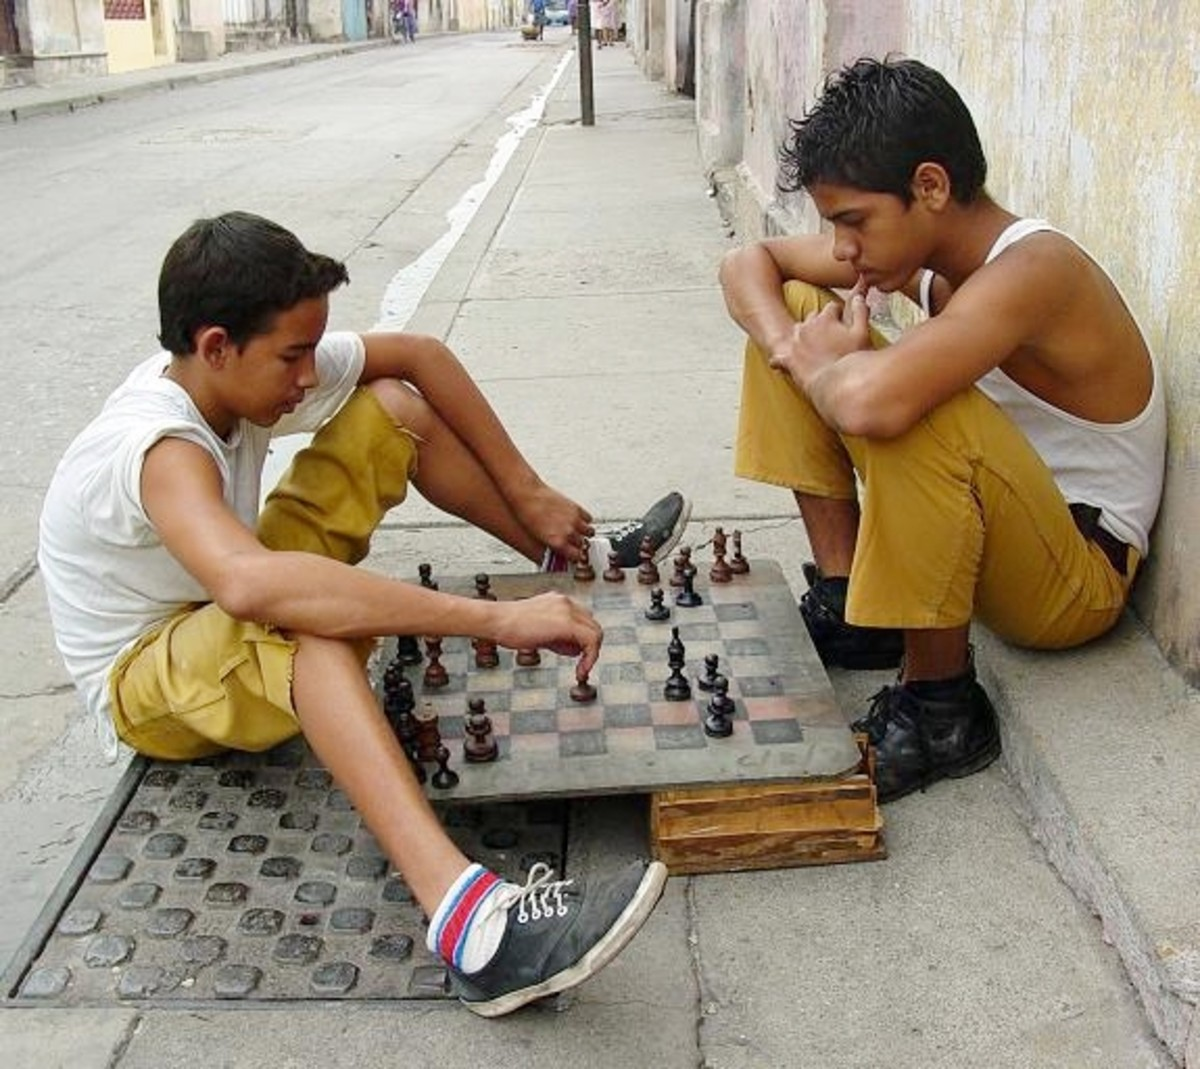 Chess activity can take place anywhere